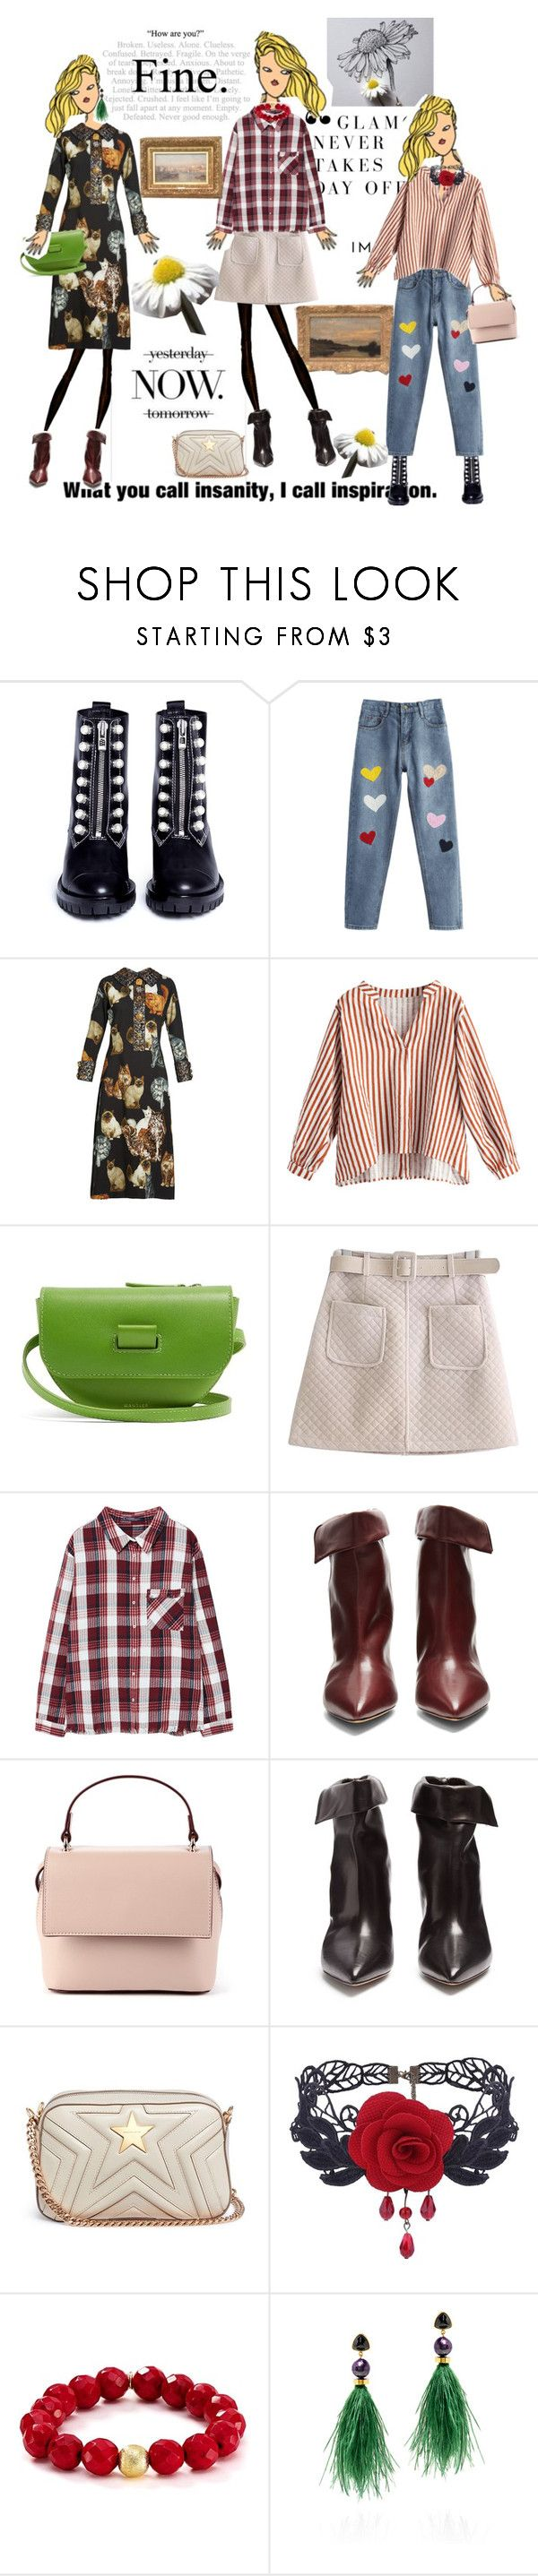 """January 25,2018"" by anny951 ❤ liked on Polyvore featuring 3.1 Phillip Lim, MELIN, Dolce&Gabbana, Wandler, WithChic, MANGO, Isabel Marant, Sole Society, STELLA McCARTNEY and Bourbon and Boweties"